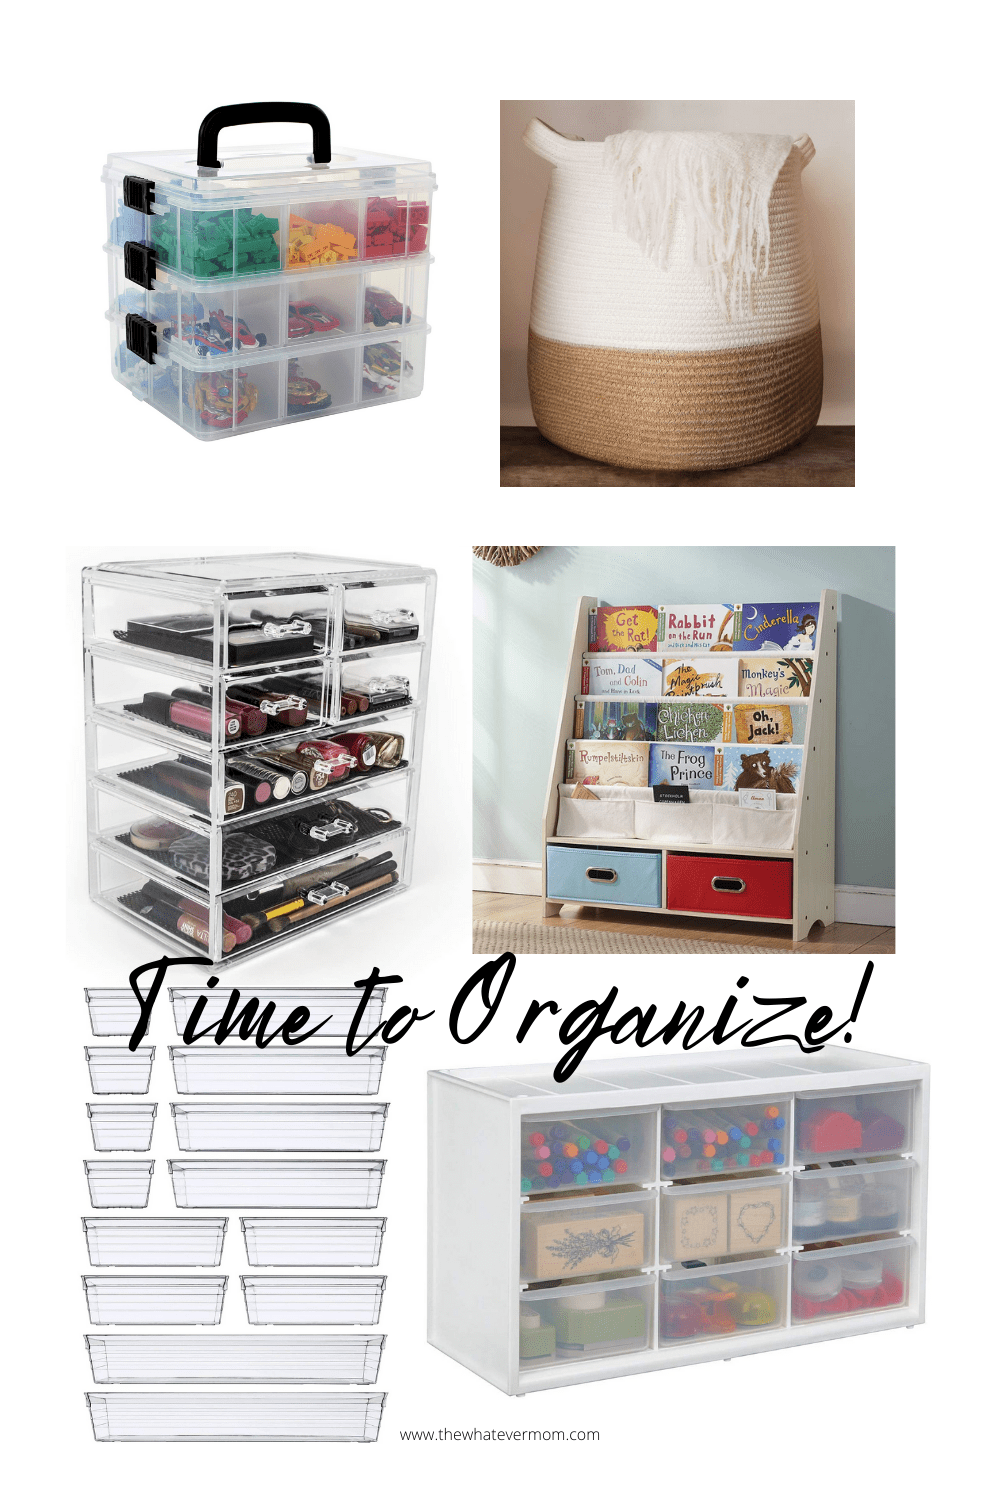 Time to Organize!